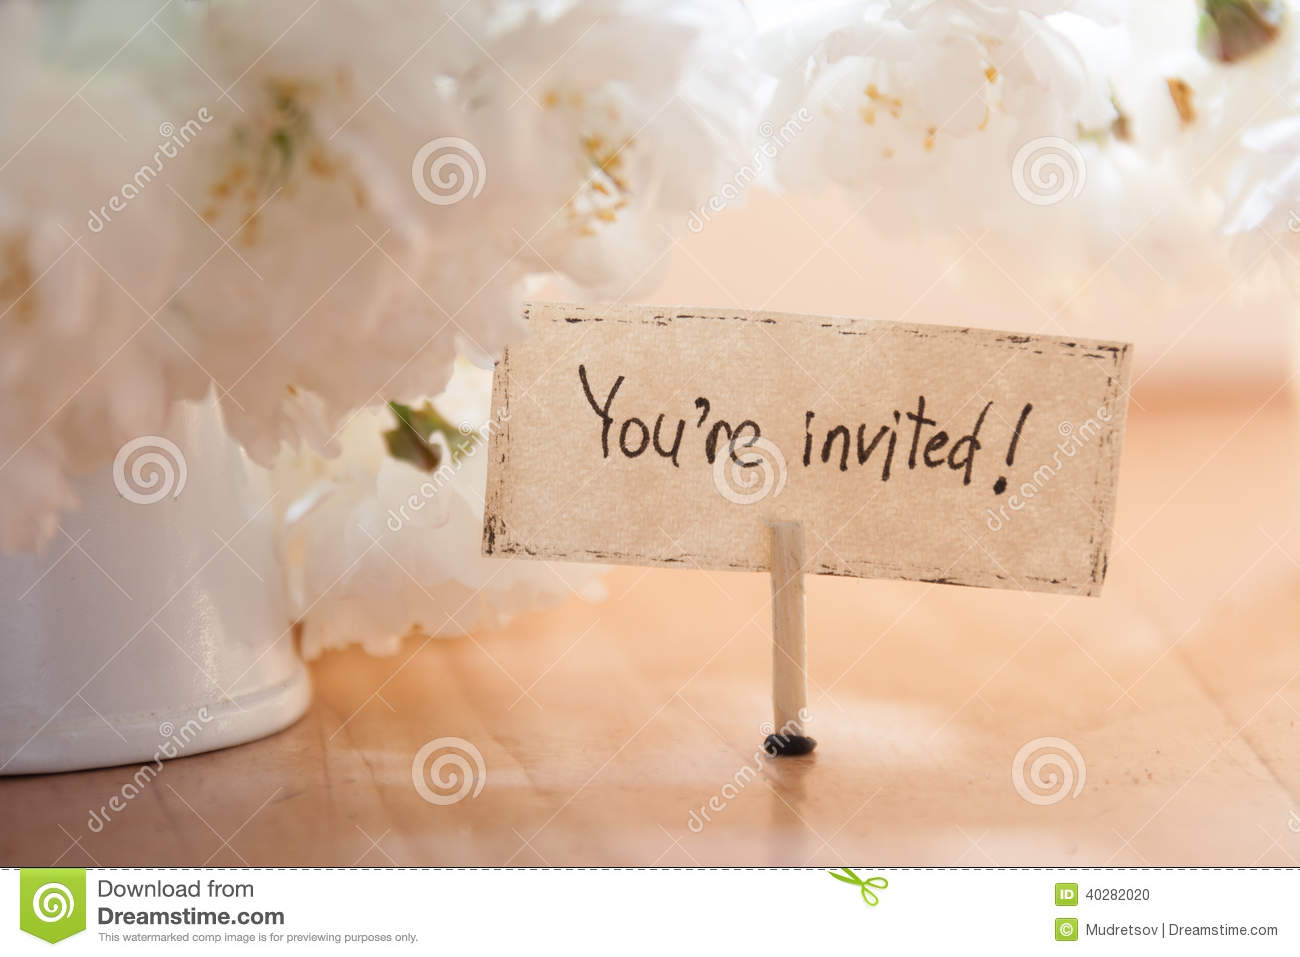 youre invited stock photo image 40282020